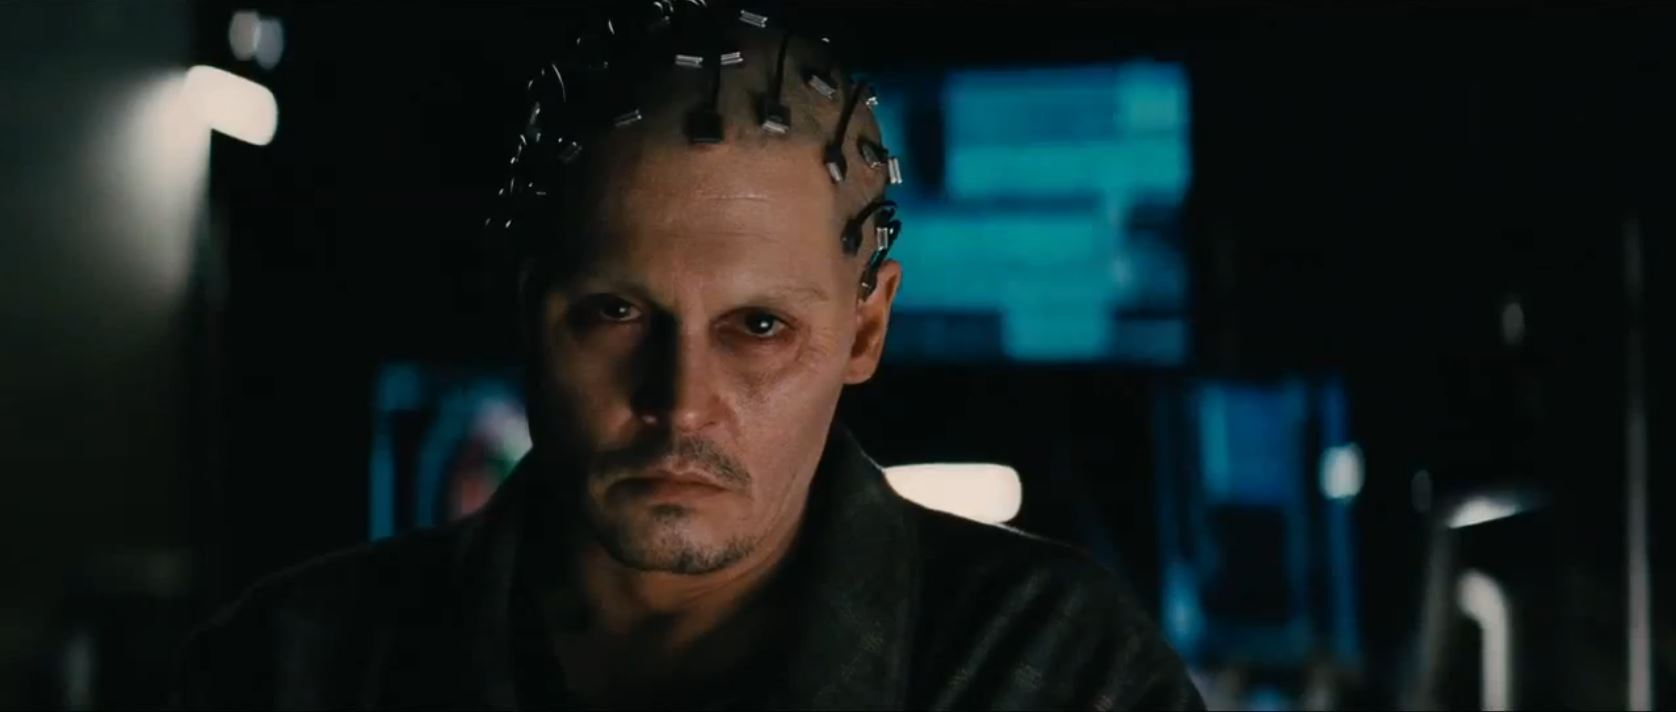 transcendence movie - Will Caster plugged in - Johnny Depp